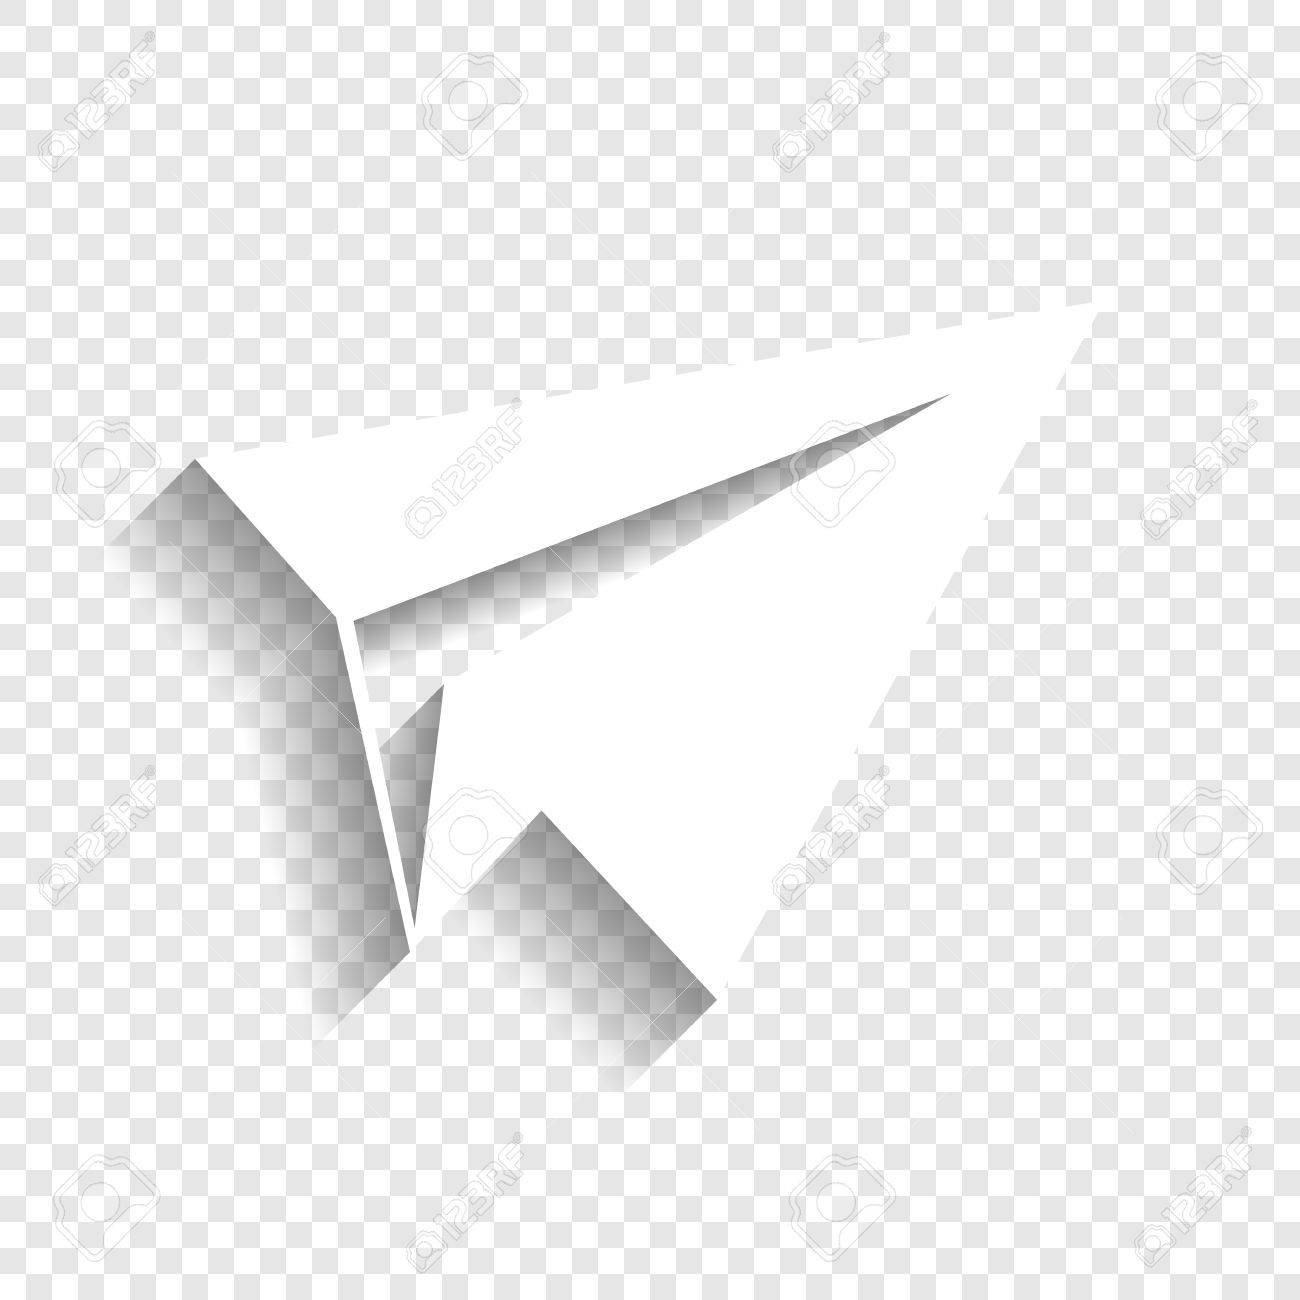 Paper Airplane Clipart No Background.